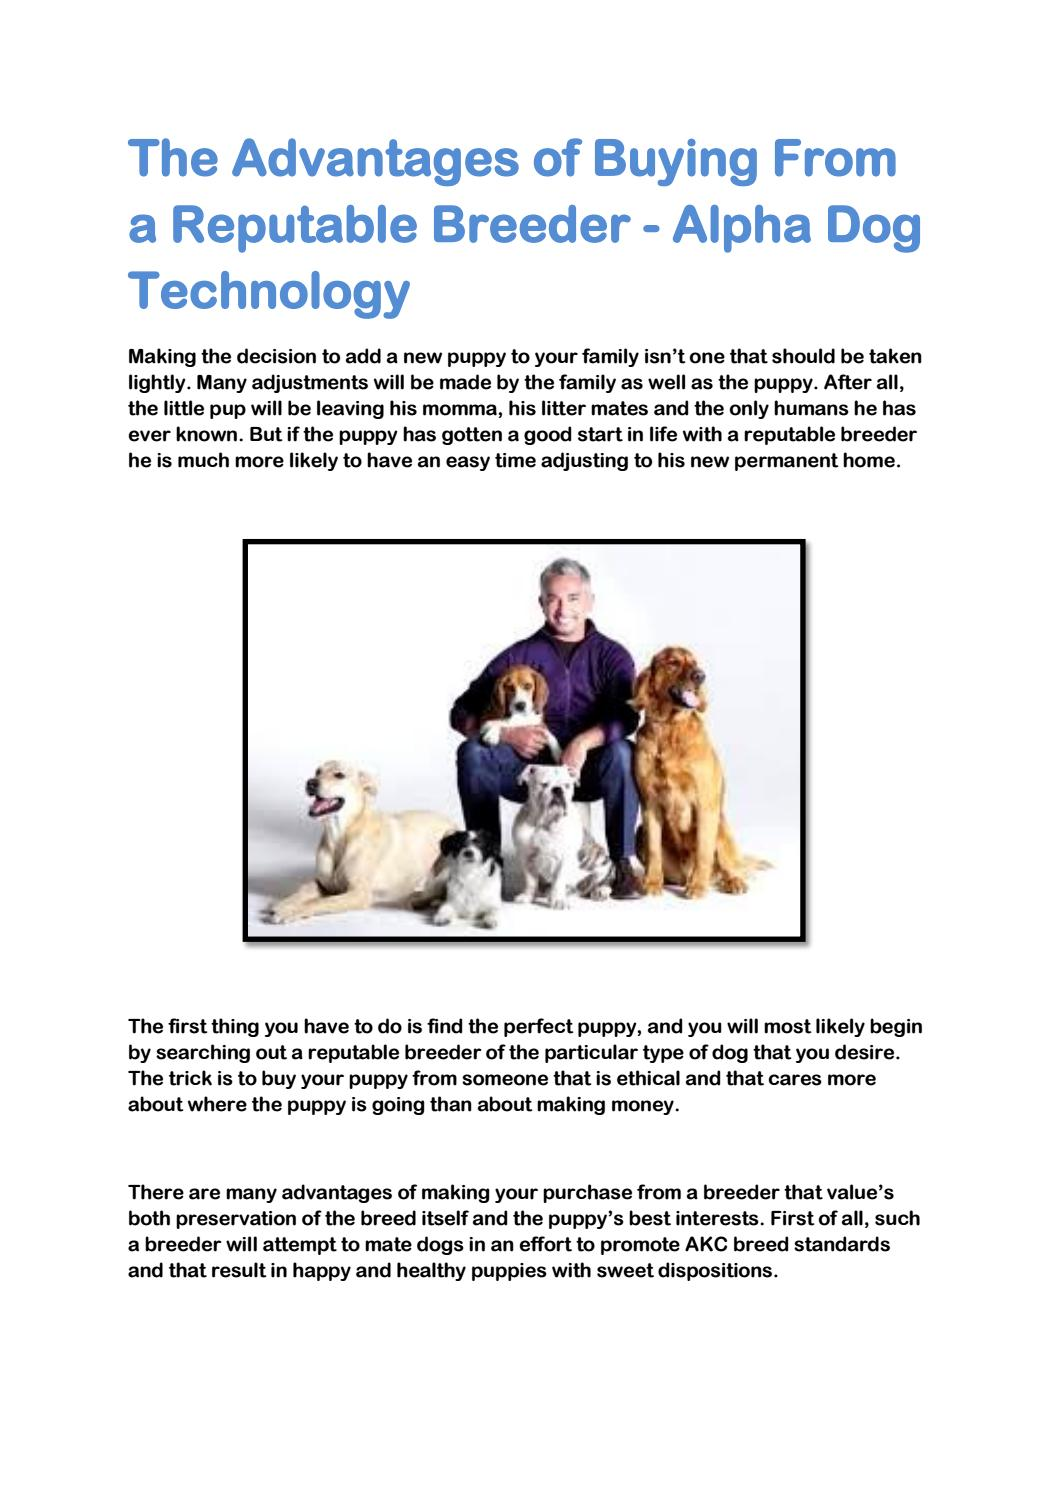 The Advantages of Buying From a Reputable Breeder - Alpha